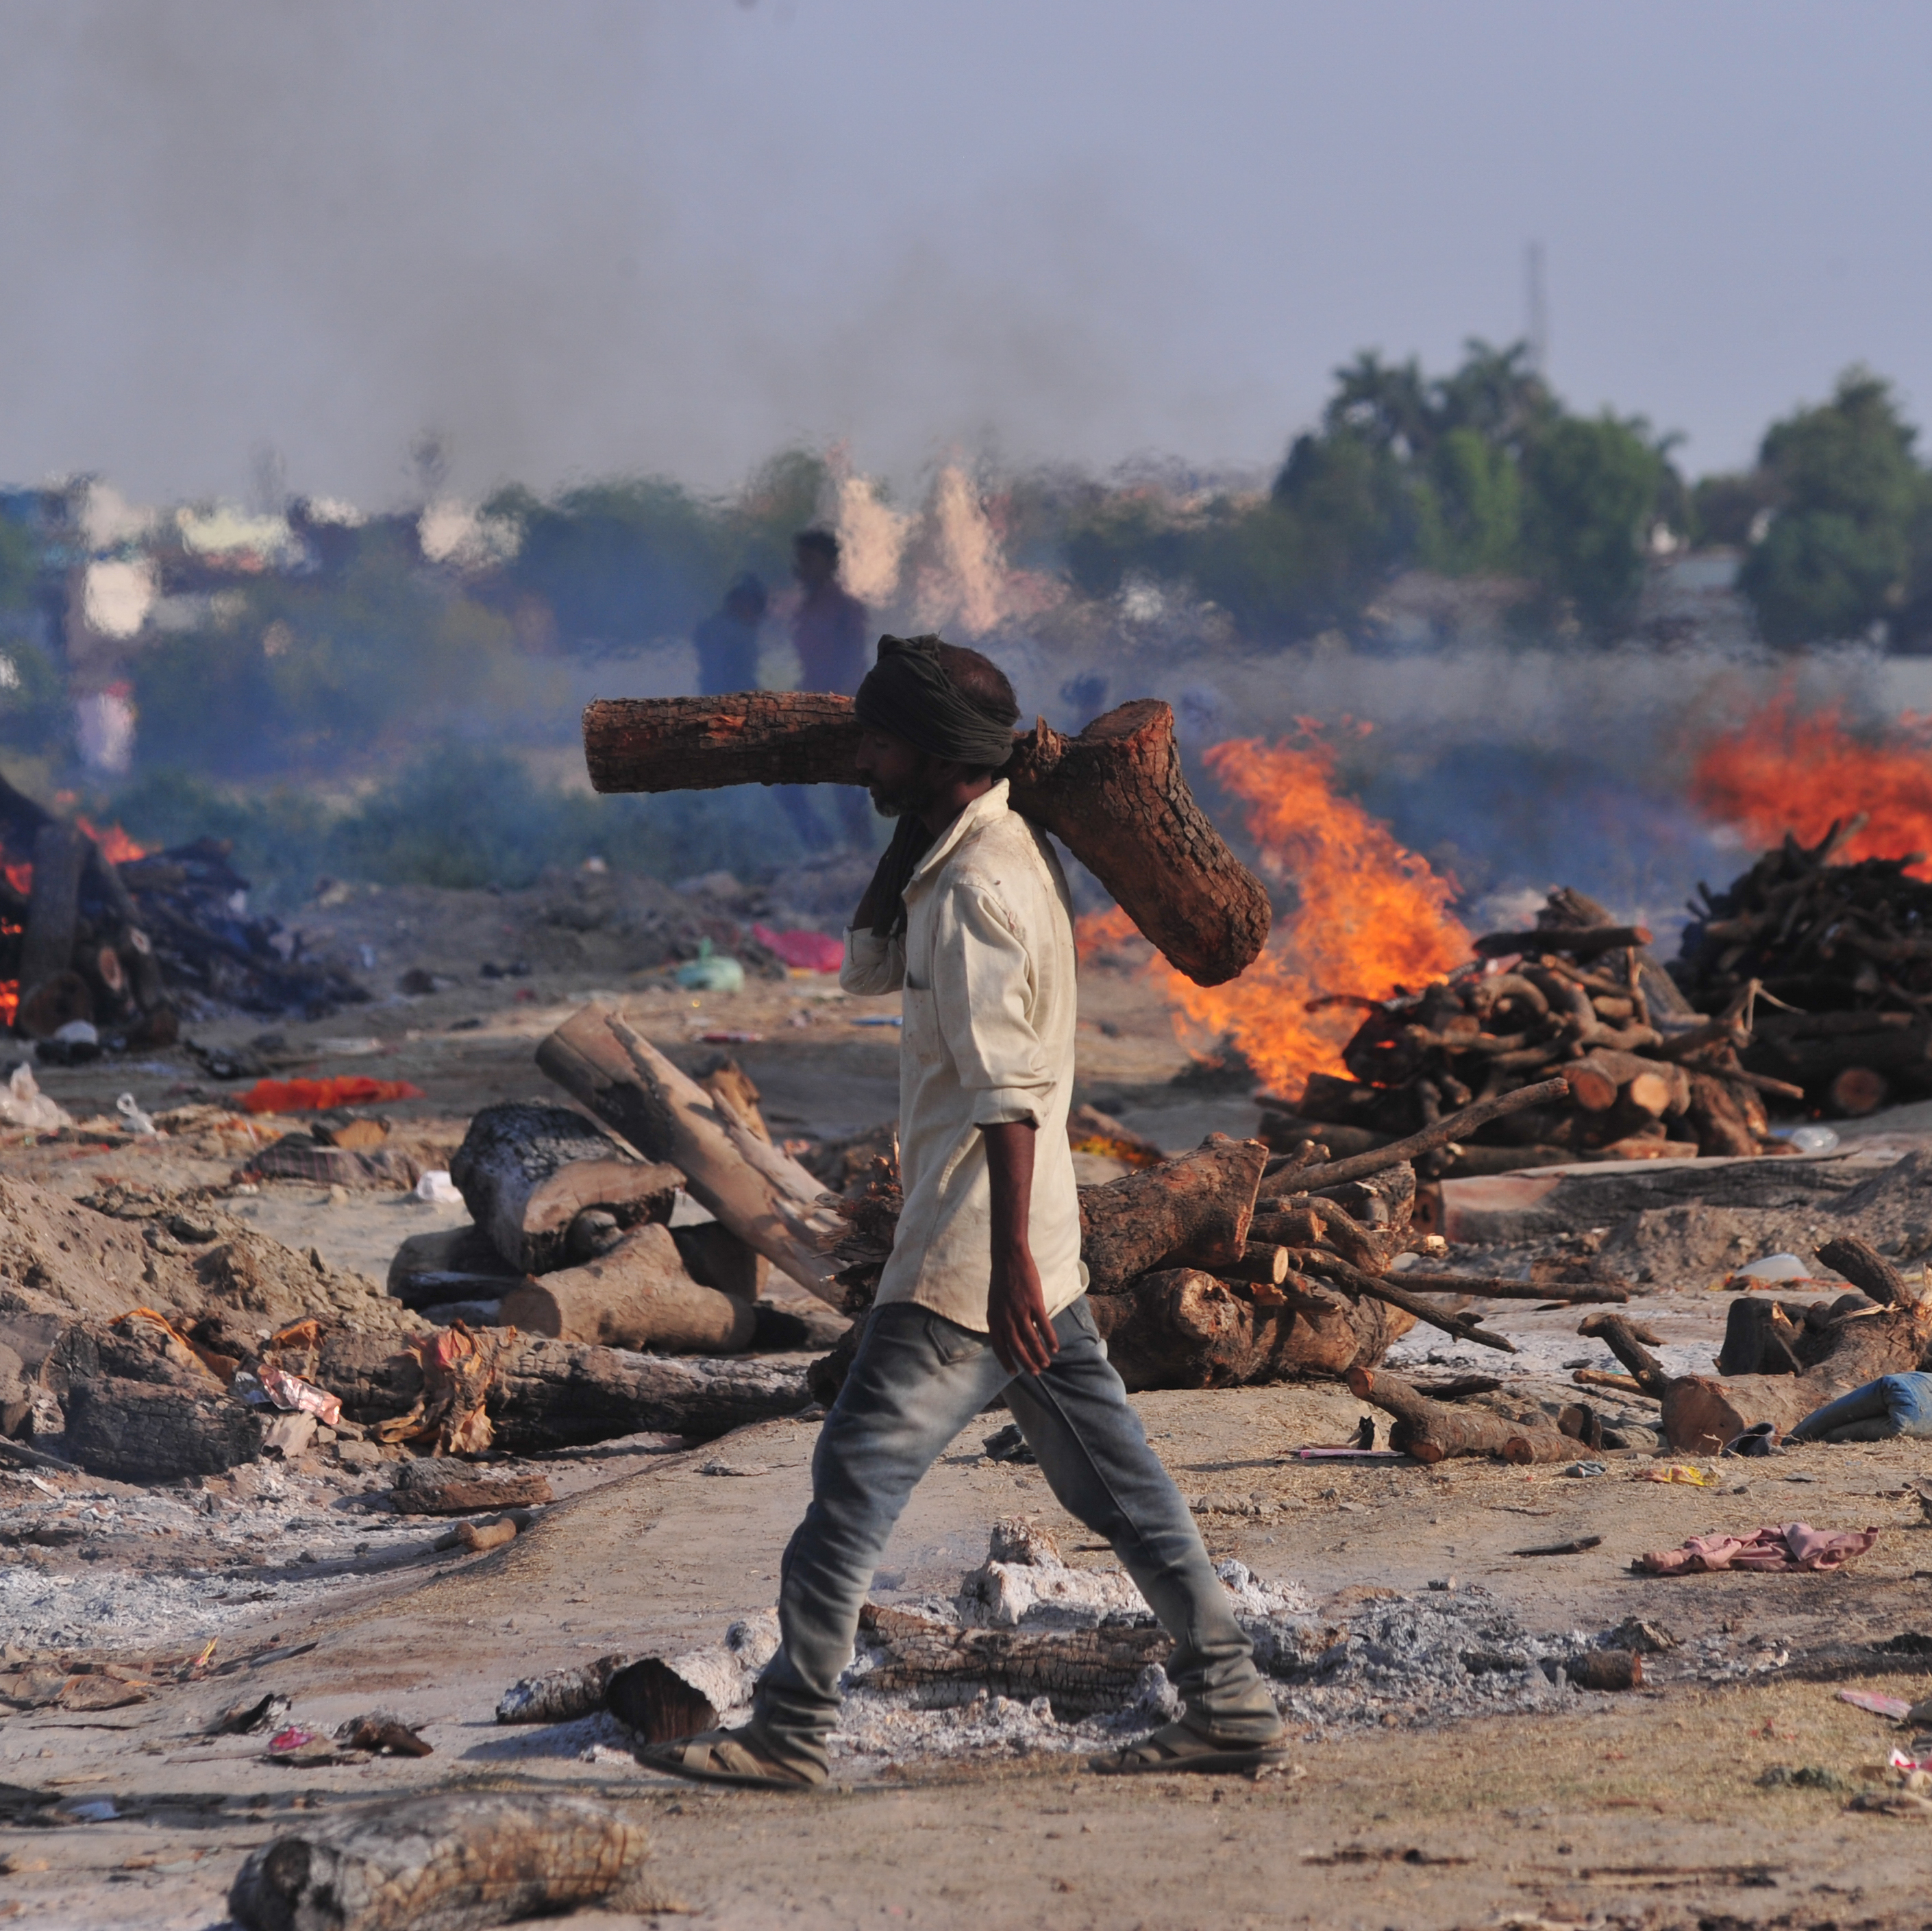 A worker carries wood to a mass cremation site on the banks of the Ganges River in Allahabad